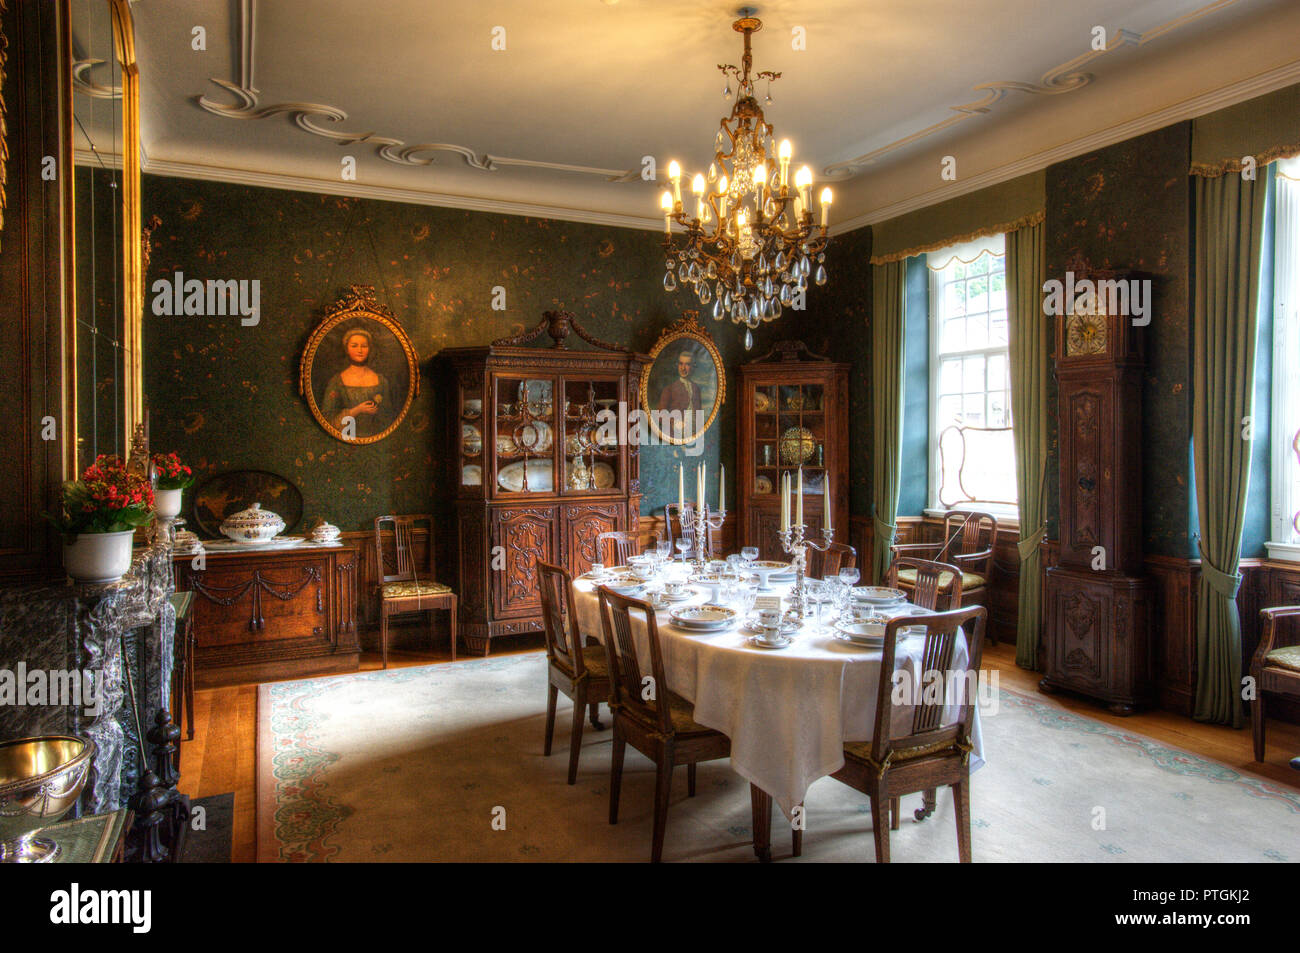 Jacobs Esszimmer Esszimmer Stock Photos Esszimmer Stock Images Alamy